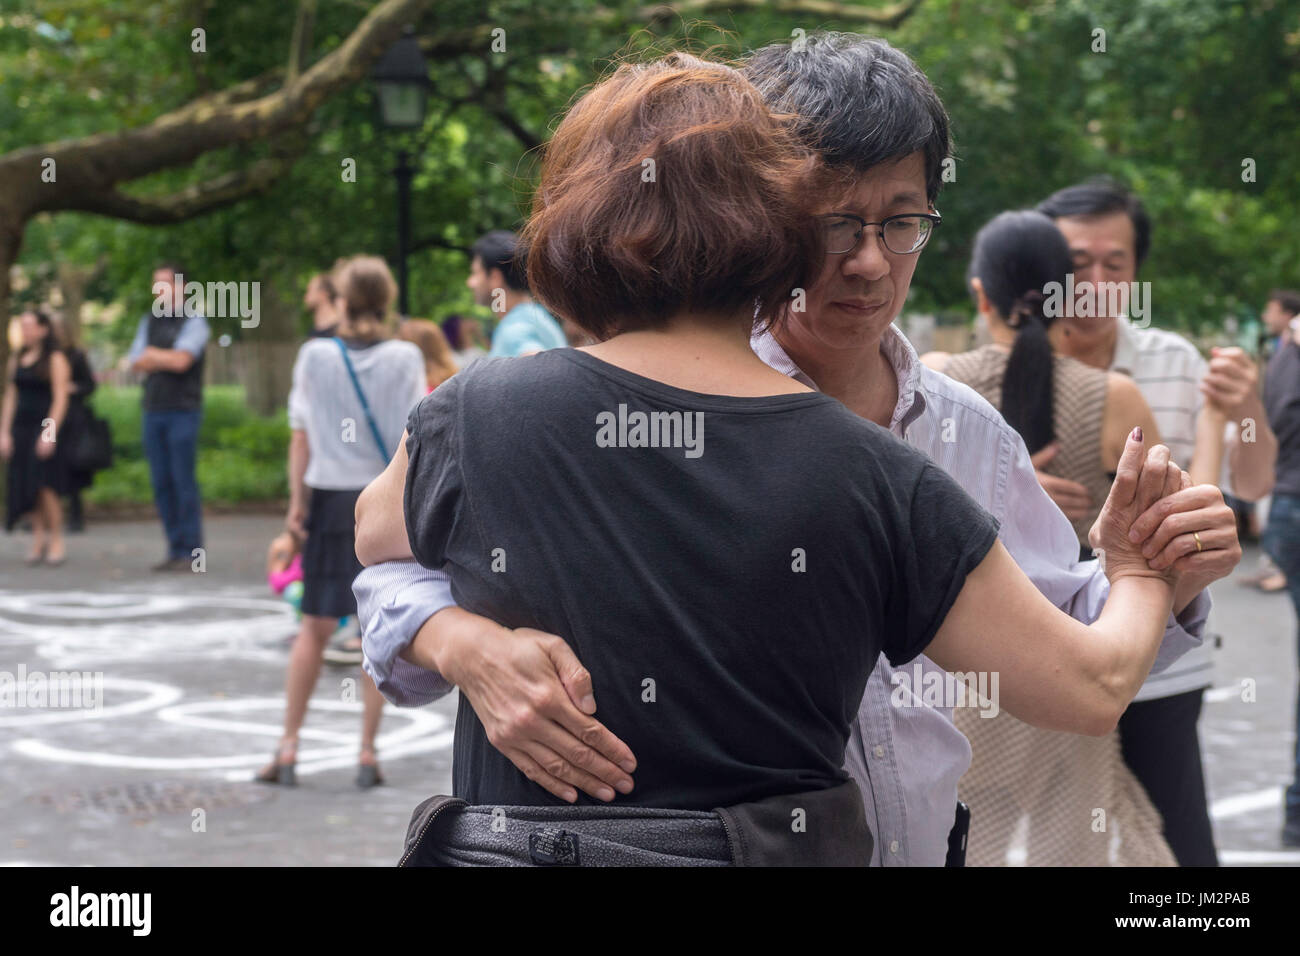 New York, NY 25 July 2017 - Ac ouple dancing the tango on a summer evening in Washington Square Park ©Stacy Walsh Rosenstock - Stock Image